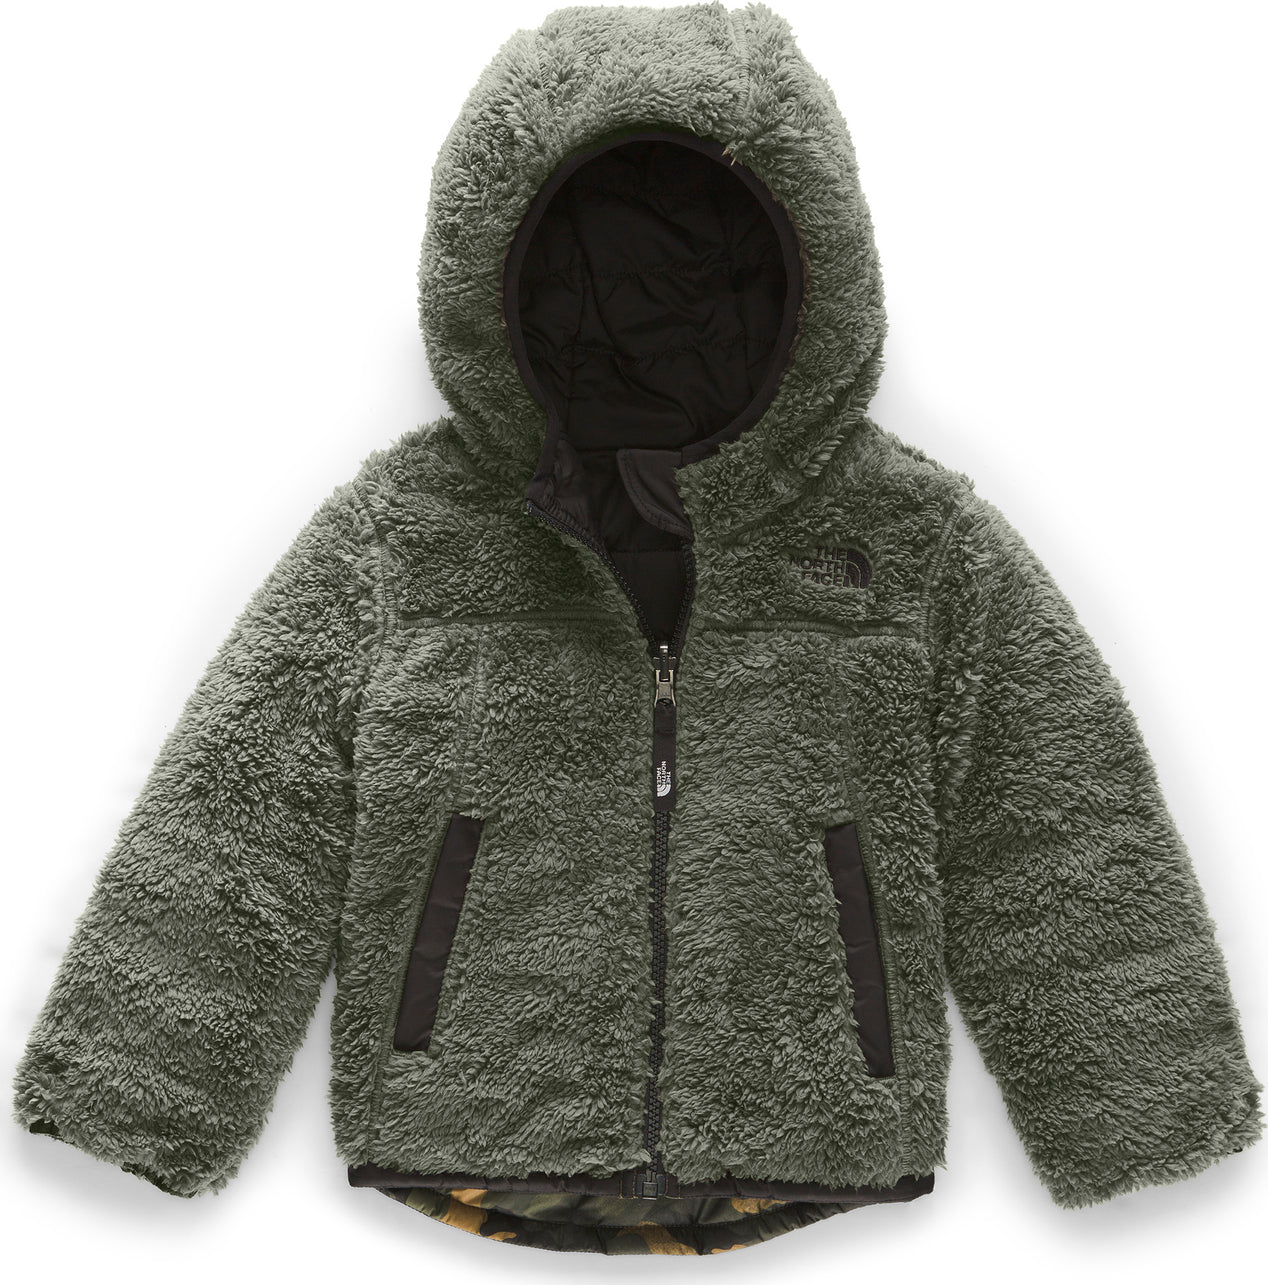 62a007e79 The North Face Reversible Mount Chimborazo Hoodie - Toddler Boy's